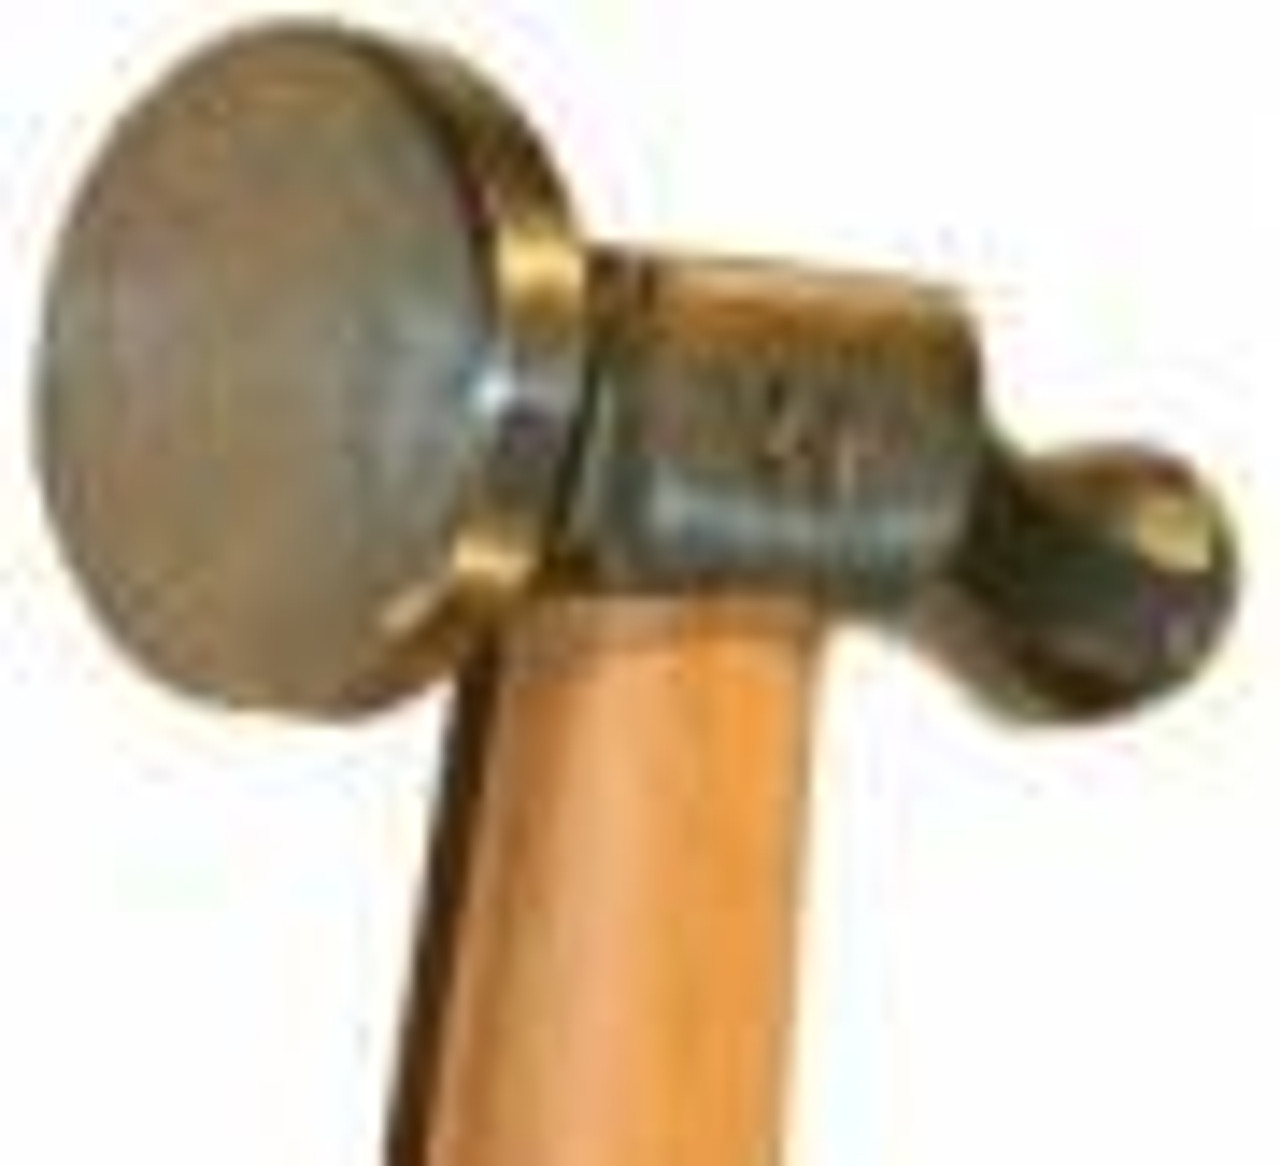 Picard 20501-26  26 mm face diameter Chasing/Repousse Hammer, wood handle